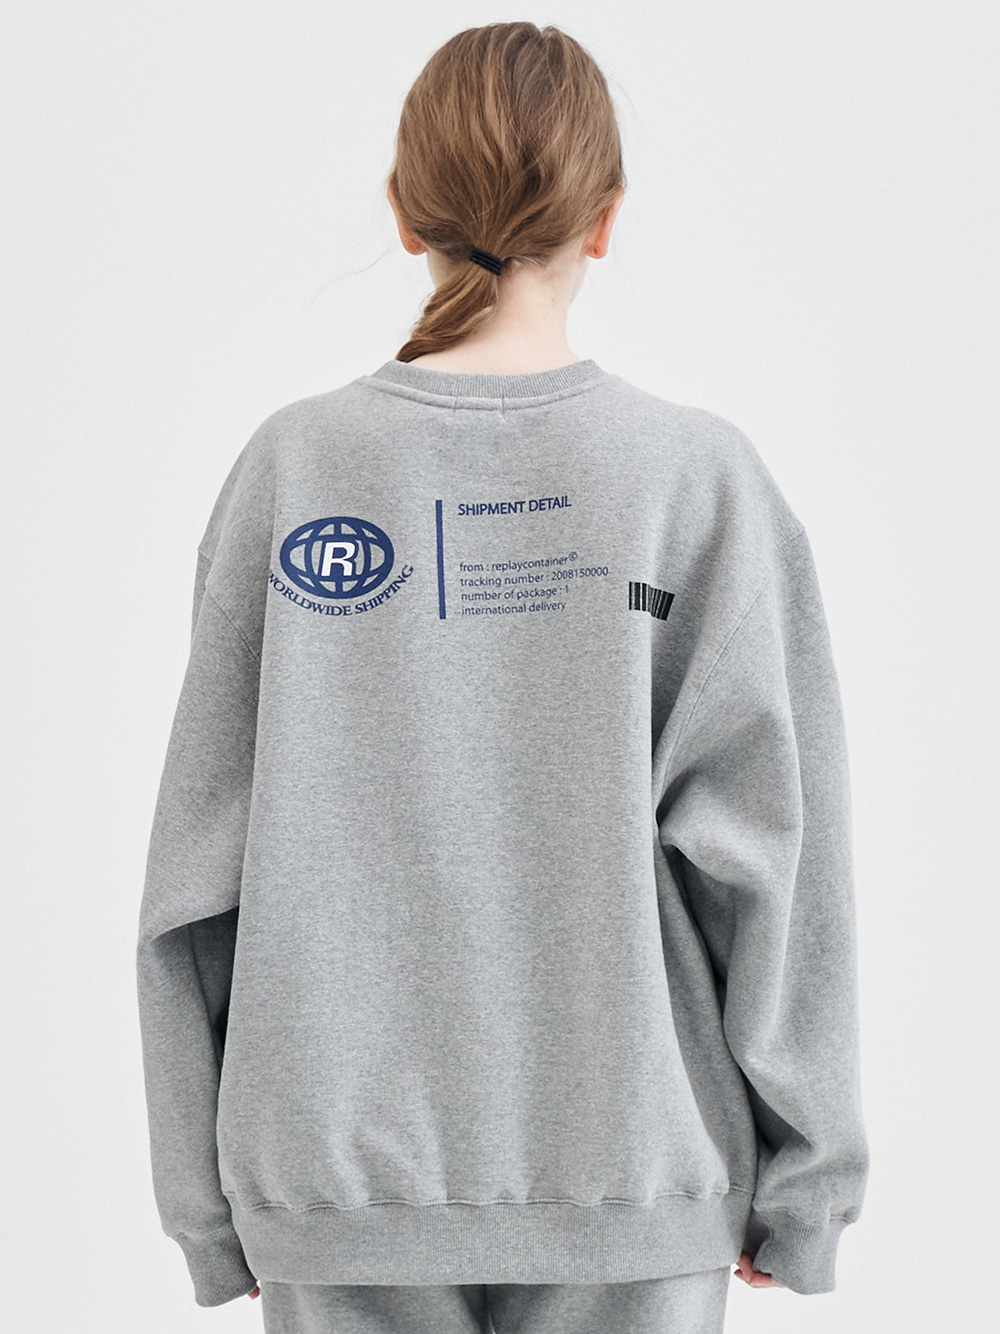 RC Worldwide mtm (gray)